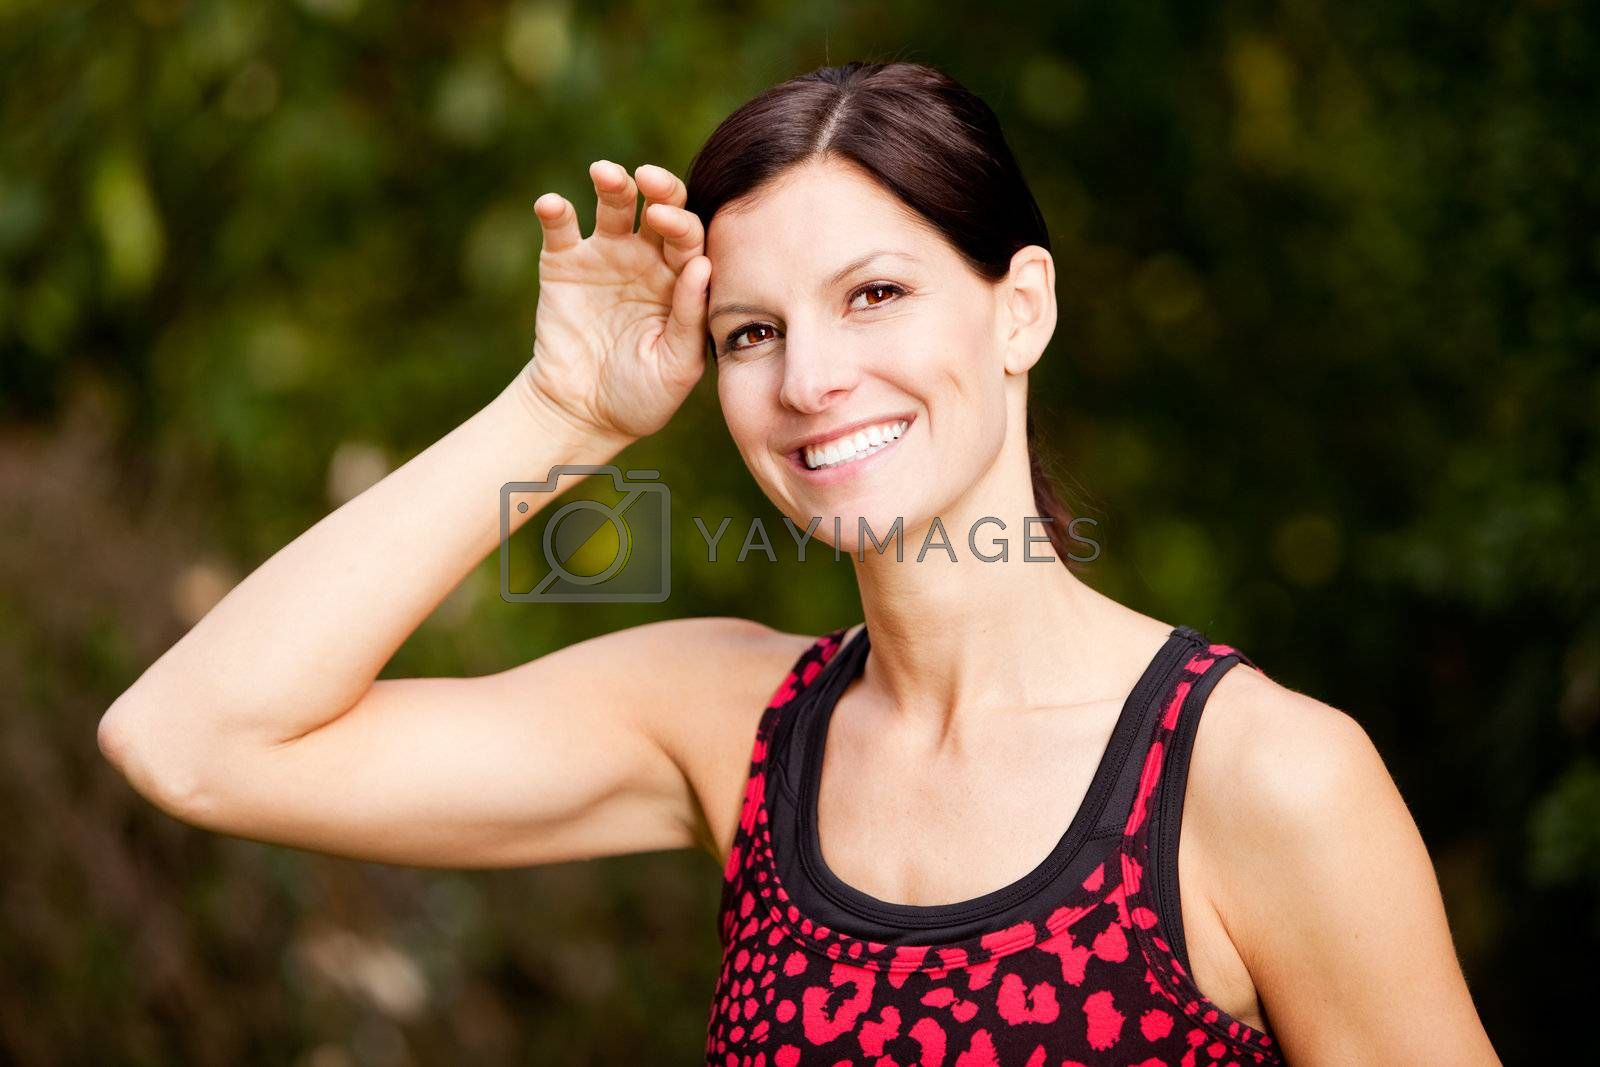 A woman exercising in a park, taking a break